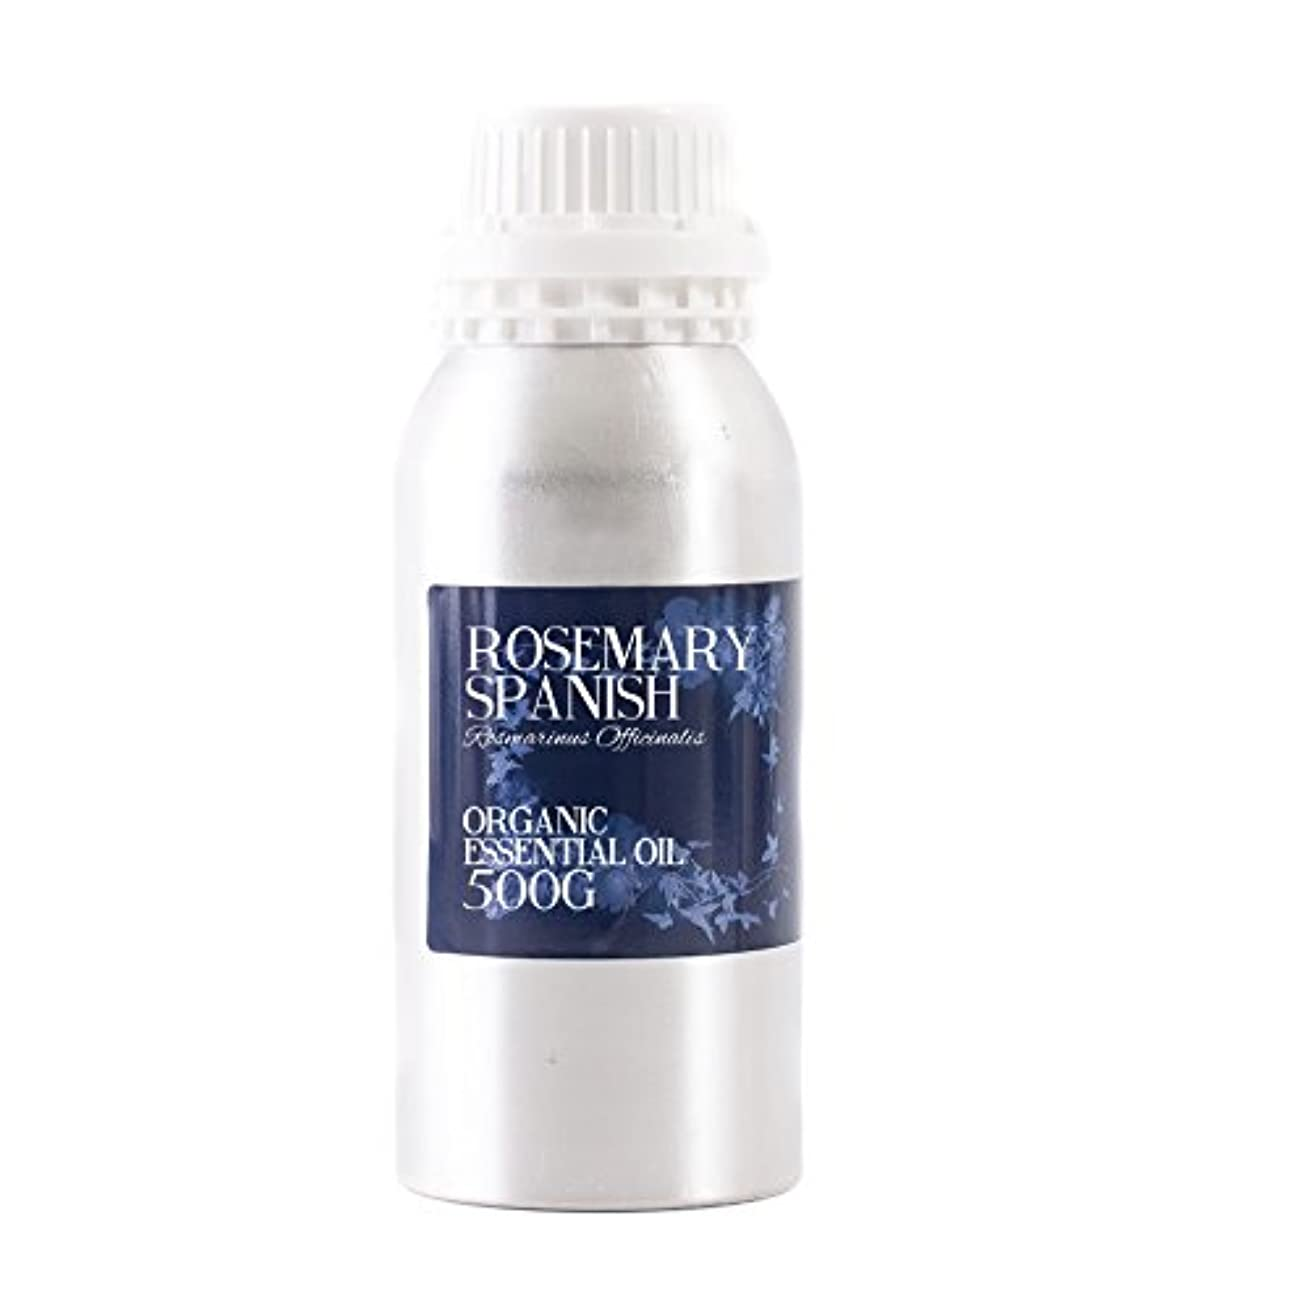 エキス広げる連鎖Mystic Moments | Rosemary Spanish Organic Essential Oil - 500g - 100% Pure